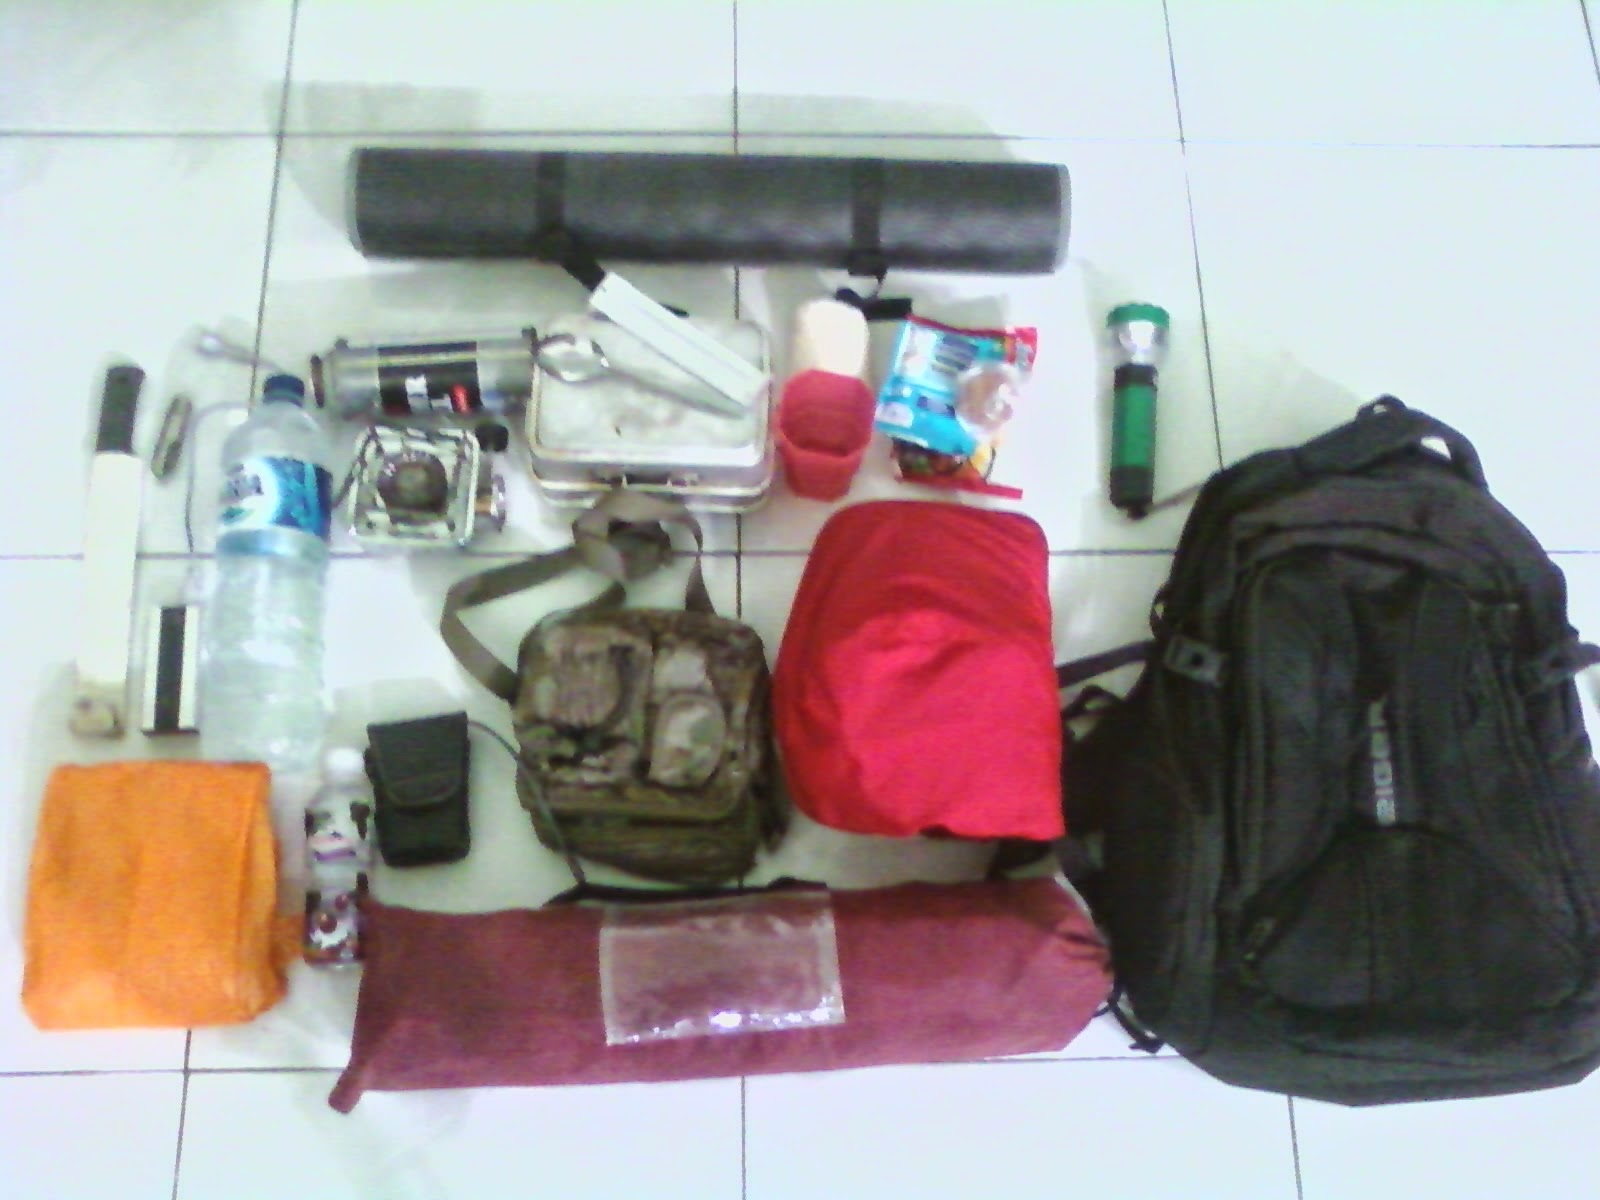 Catatan Perjalanan Outdoor Travelling Ultralight Hiking Versi Gue